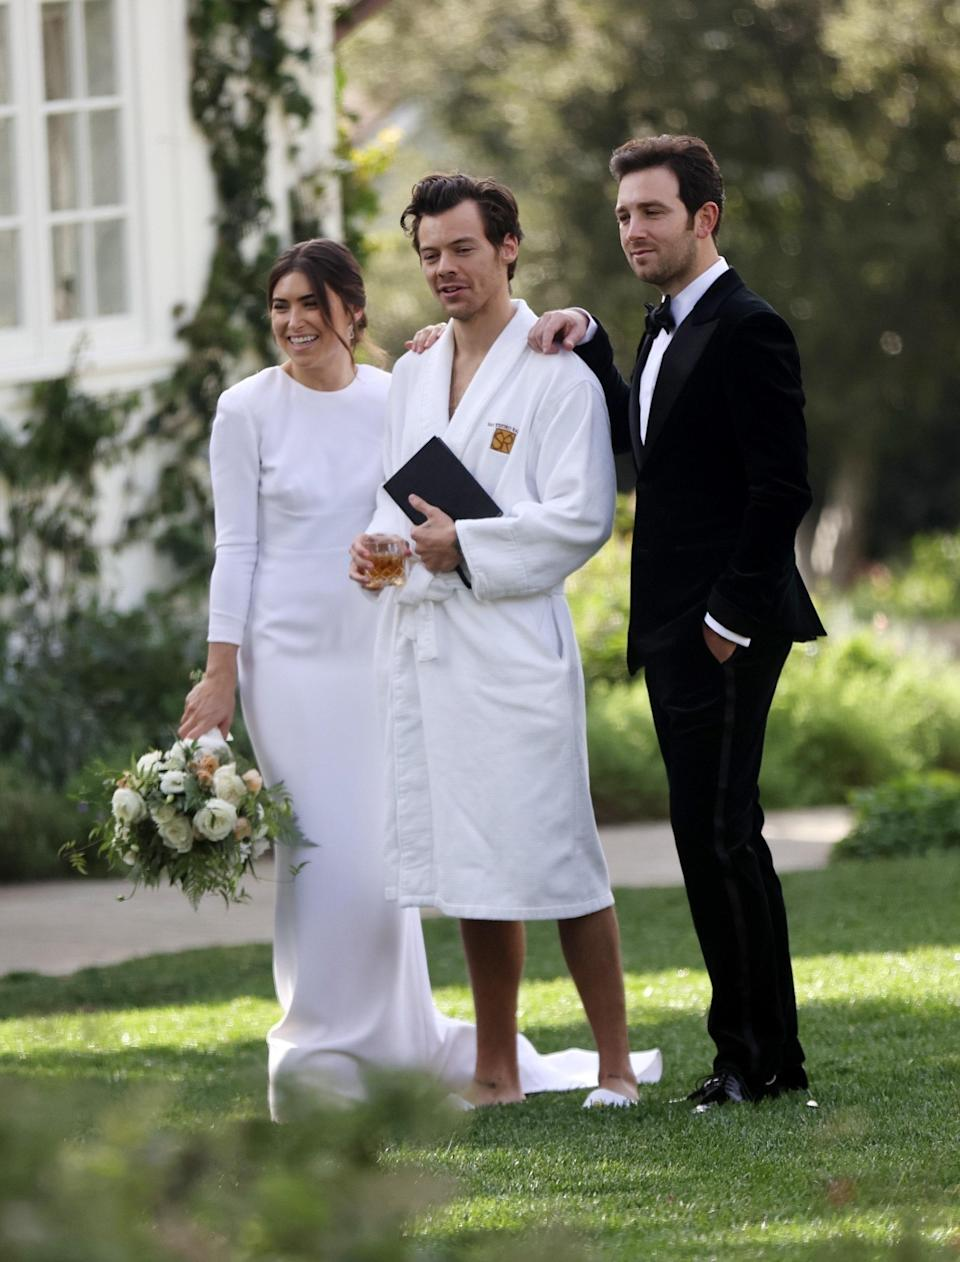 Harry Styles at his agent's wedding in Montecito, January 2, 2021.